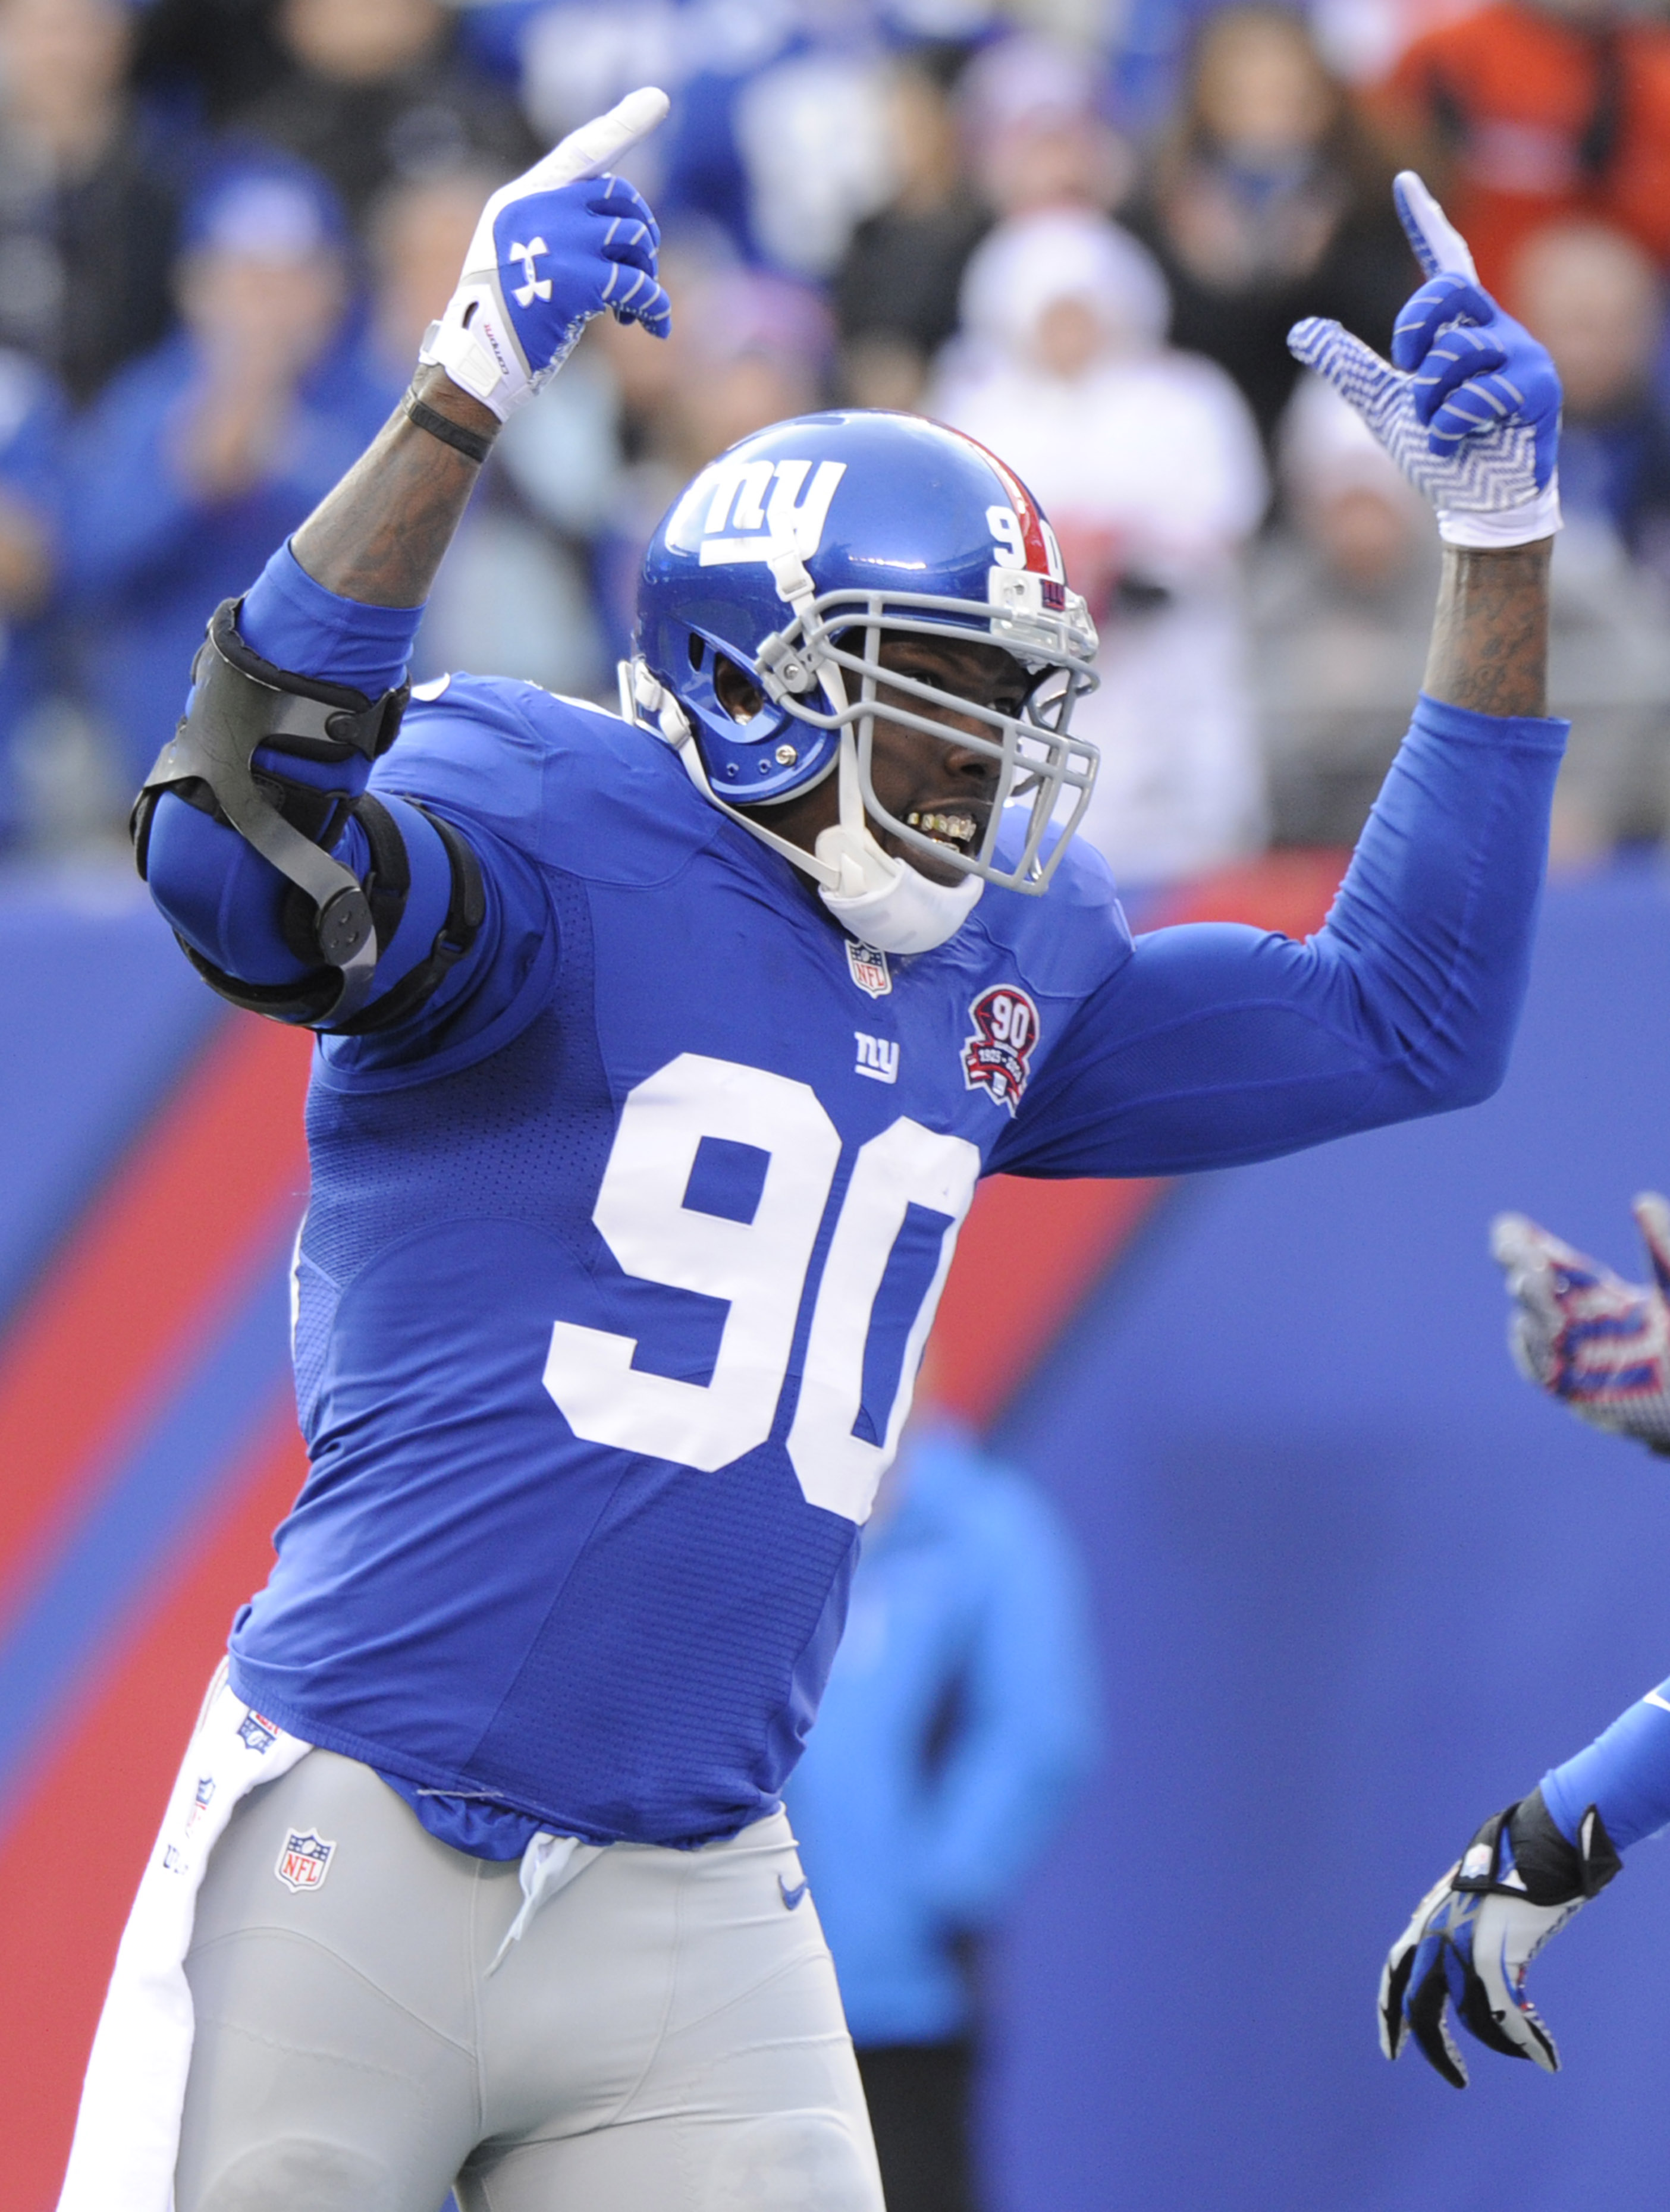 New York Giants' Jason Pierre-Paul reacts during the first half of an NFL football game against the Philadelphia Eagles Sunday, Dec. 28, 2014, in East Rutherford, N.J. (AP Photo/Bill Kostroun)